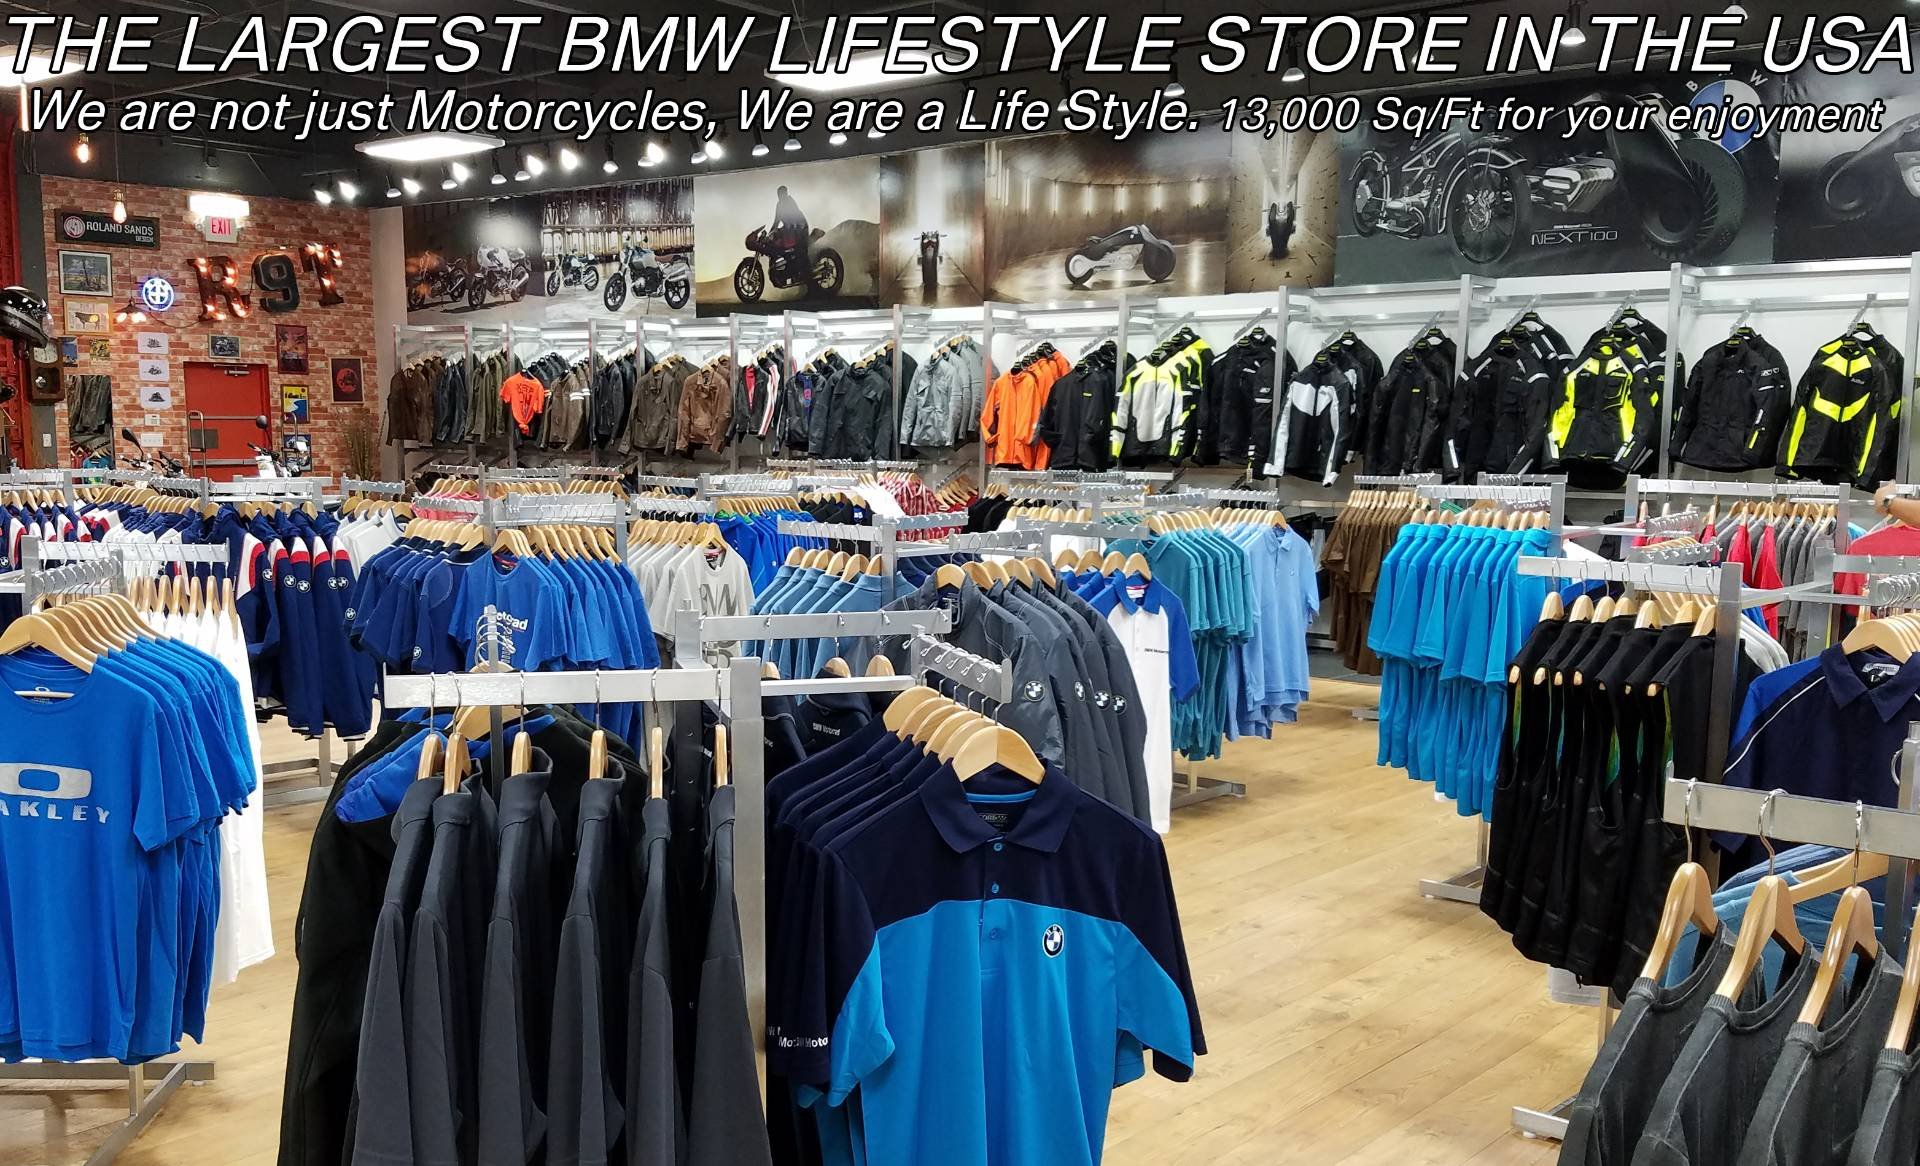 New 2019 BMW R 1250 GS for sale, New BMW R 1250GS, BMW R1250GS for sale, 1250GS, R1250GS, BMW Motorcycles of Miami, Motorcycles of Miami. Motorcycles Miami - Photo 42